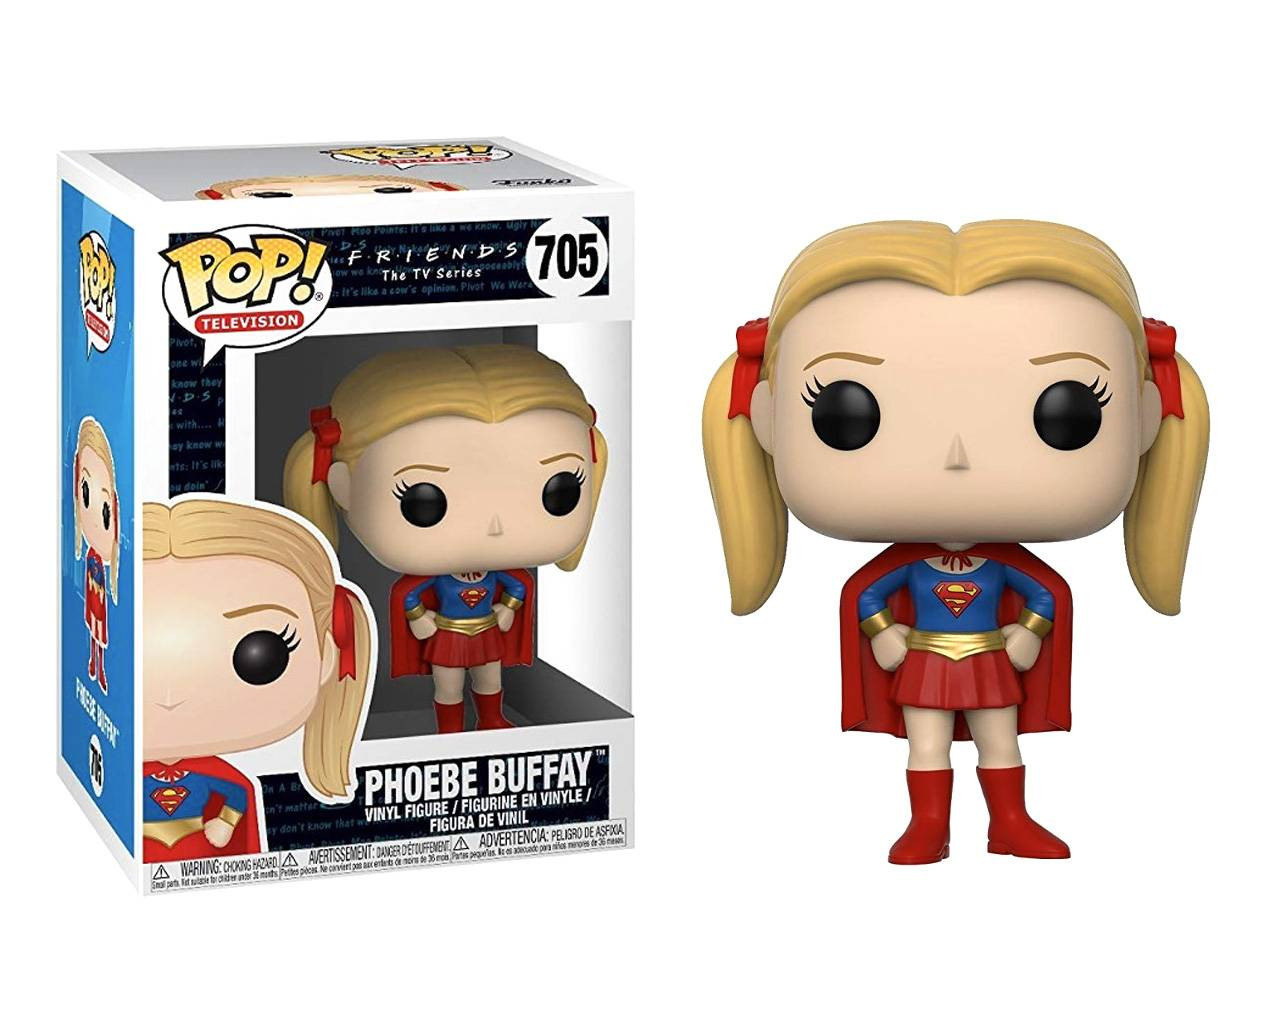 Phoebe Buffay (as Supergirl) Pop! Vinyl